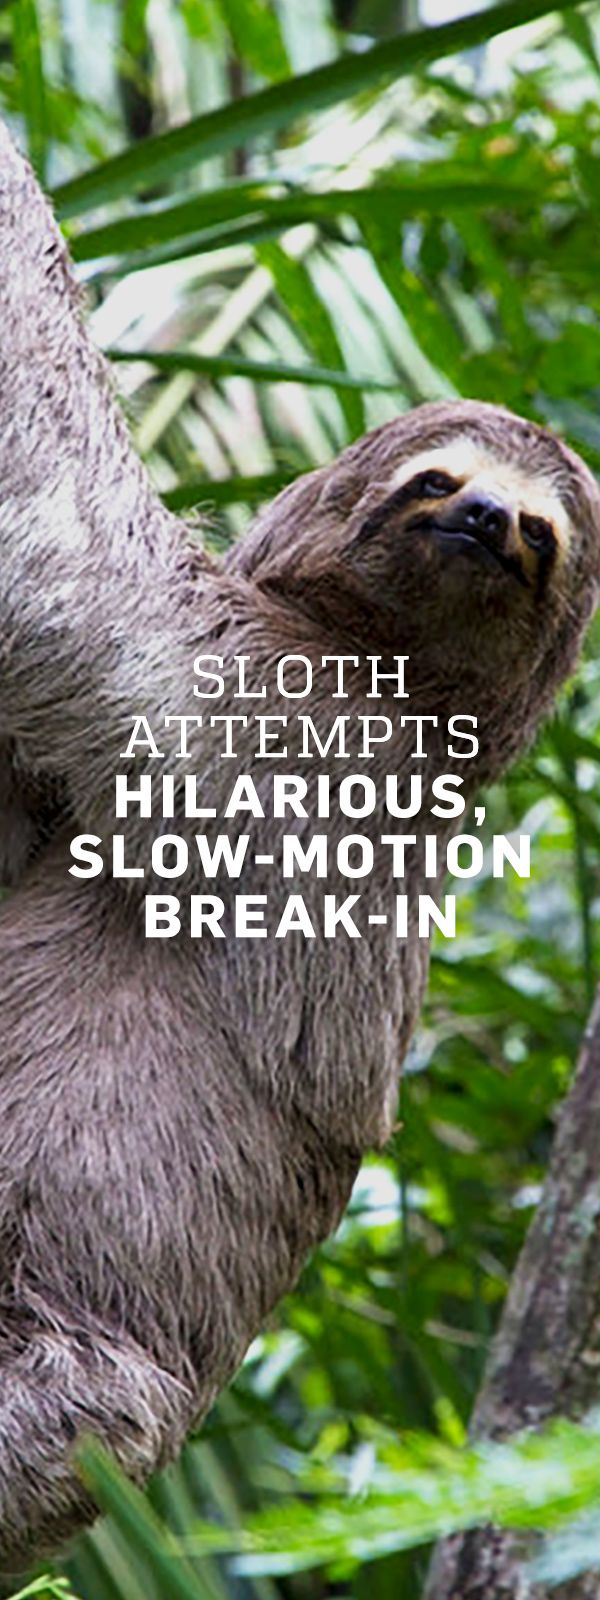 Sloth going to the bathroom - In What Was Likely The Slowest Invasion Attempt Ever A Sloth Attempted To Break Into